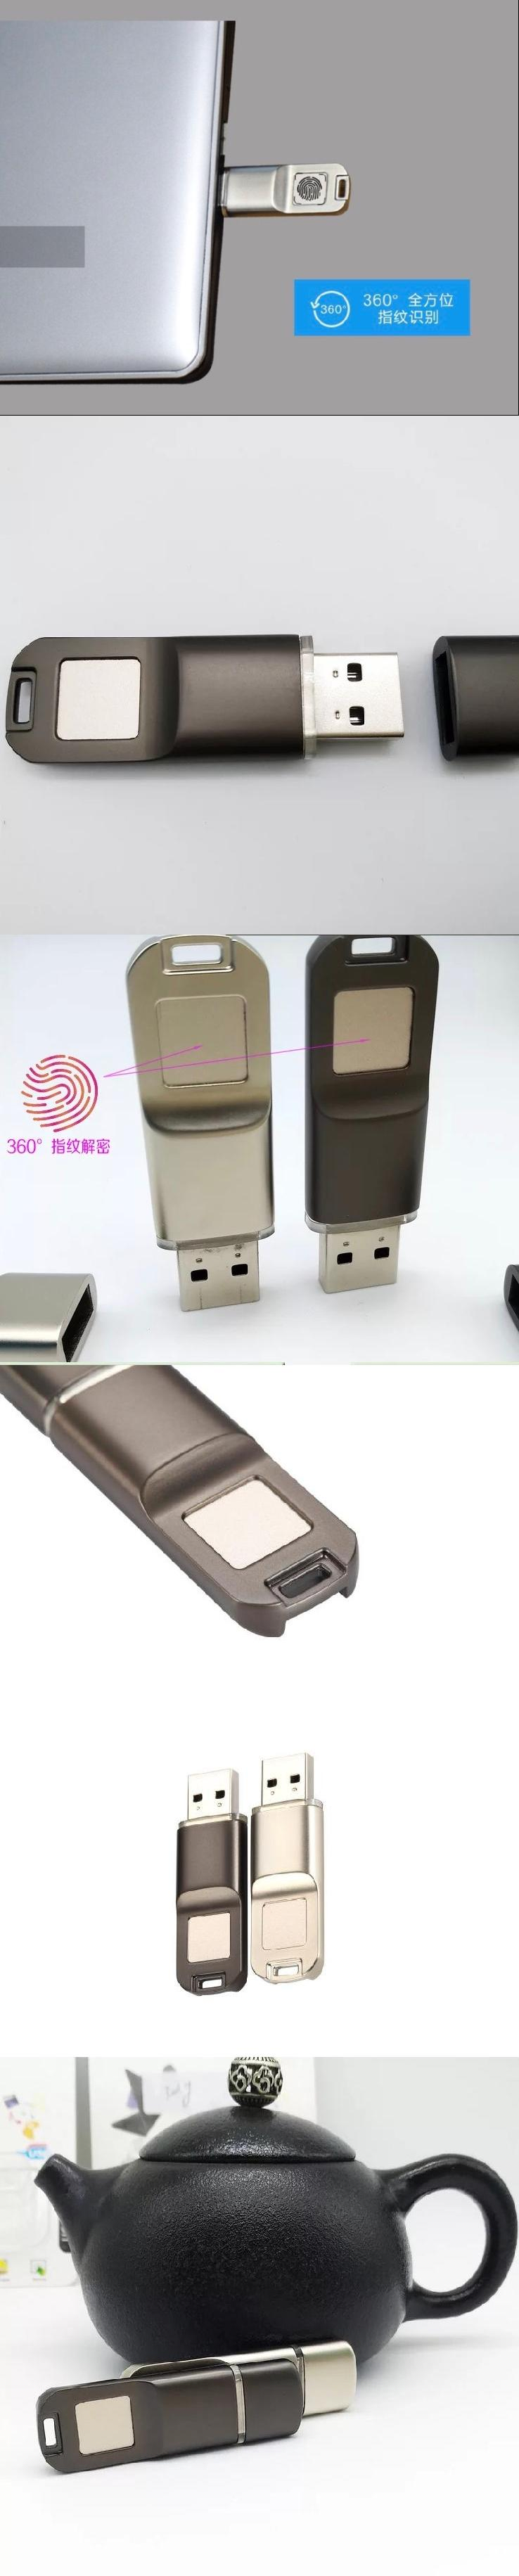 China supplier wholesale usb flash drive 32gb custom 3.0 32g